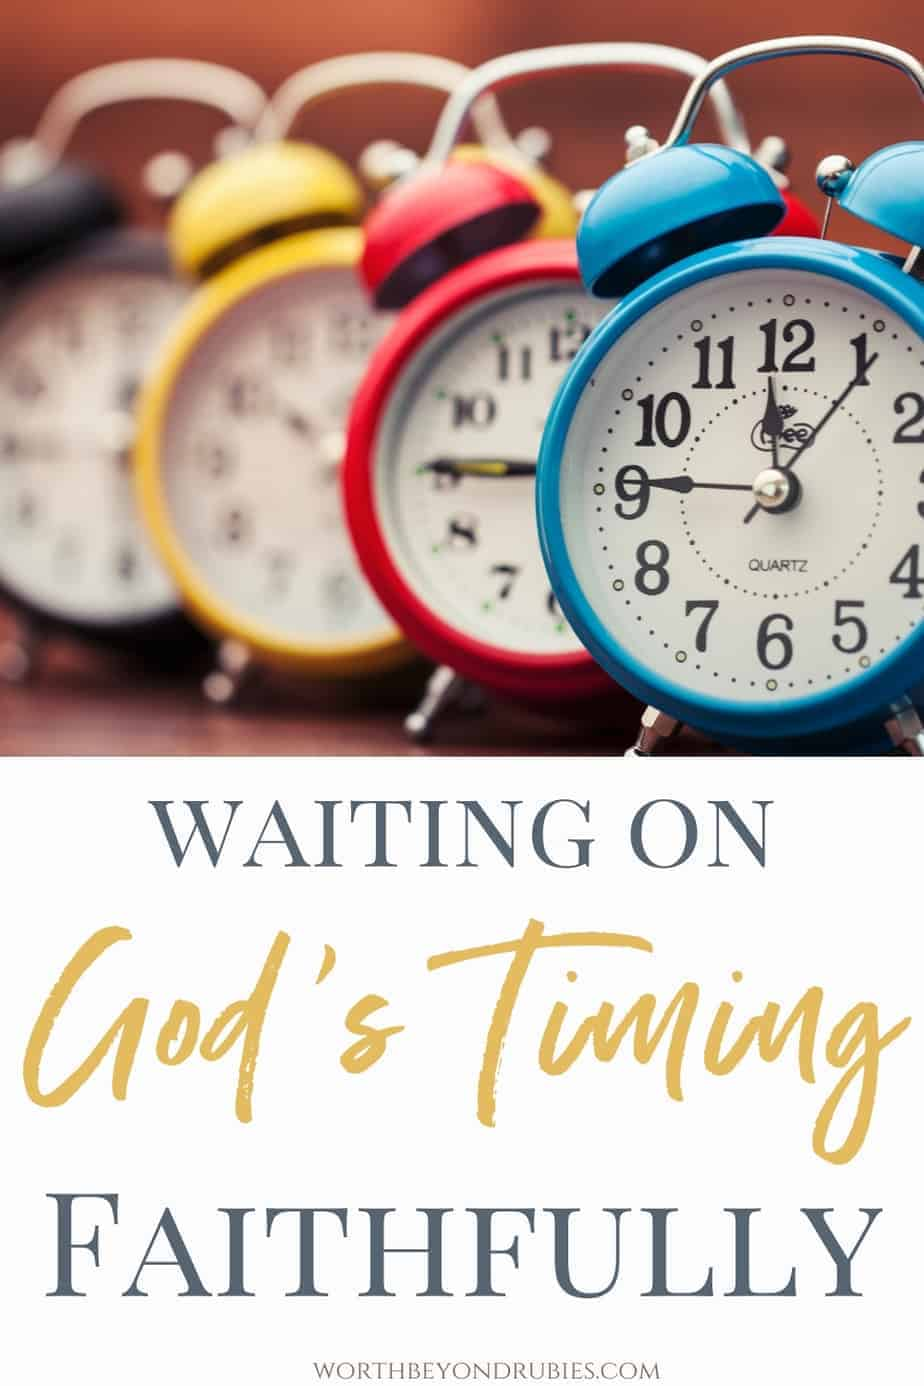 An image of different color alarm clocks lined up and text overlay that says Waiting on God's Timing Faithfully